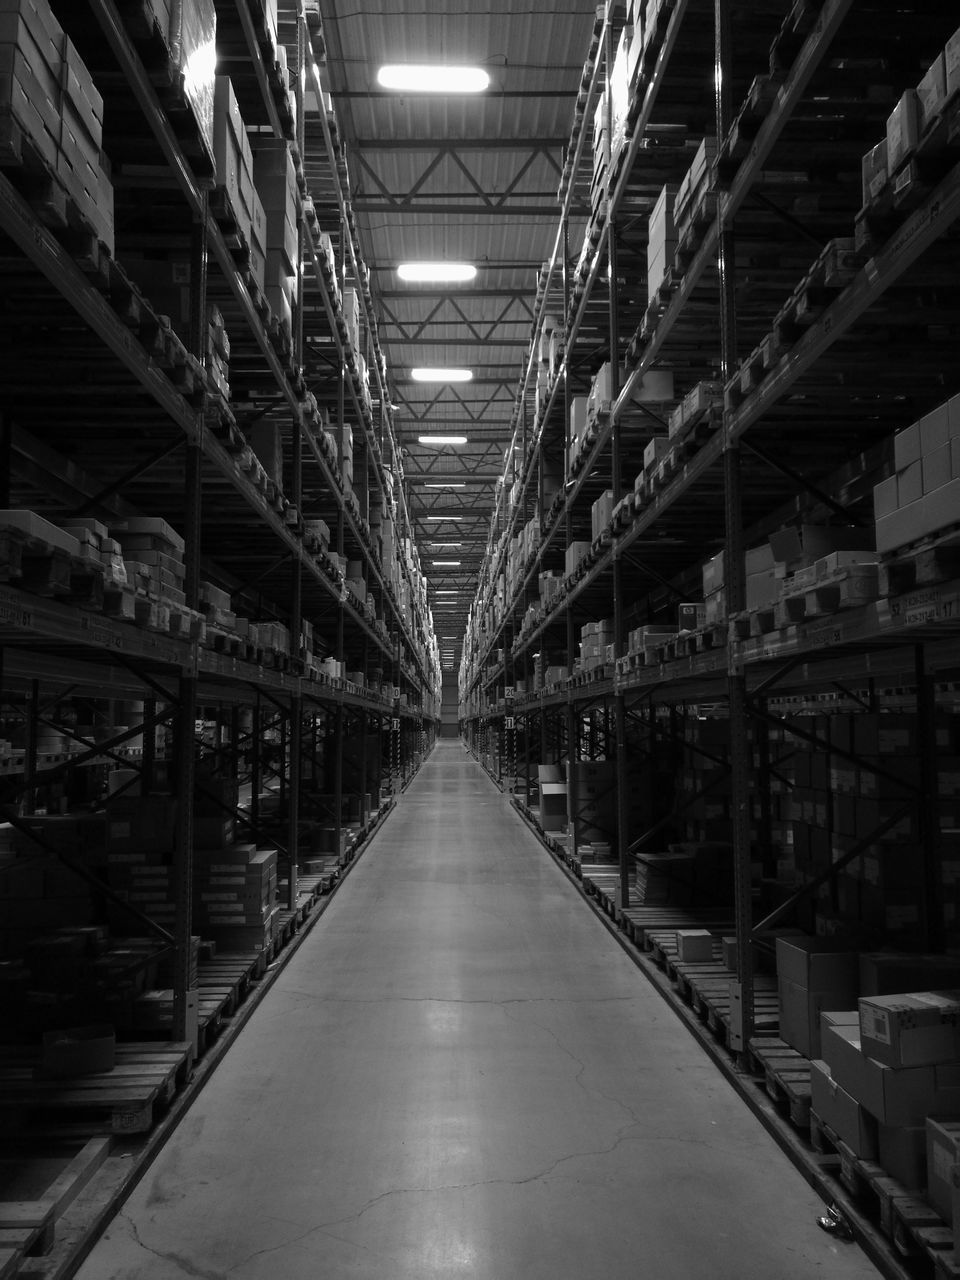 shelf, indoors, warehouse, diminishing perspective, in a row, the way forward, storage compartment, distribution warehouse, storage room, factory, corridor, industry, illuminated, freight transportation, no people, shipping, architecture, day